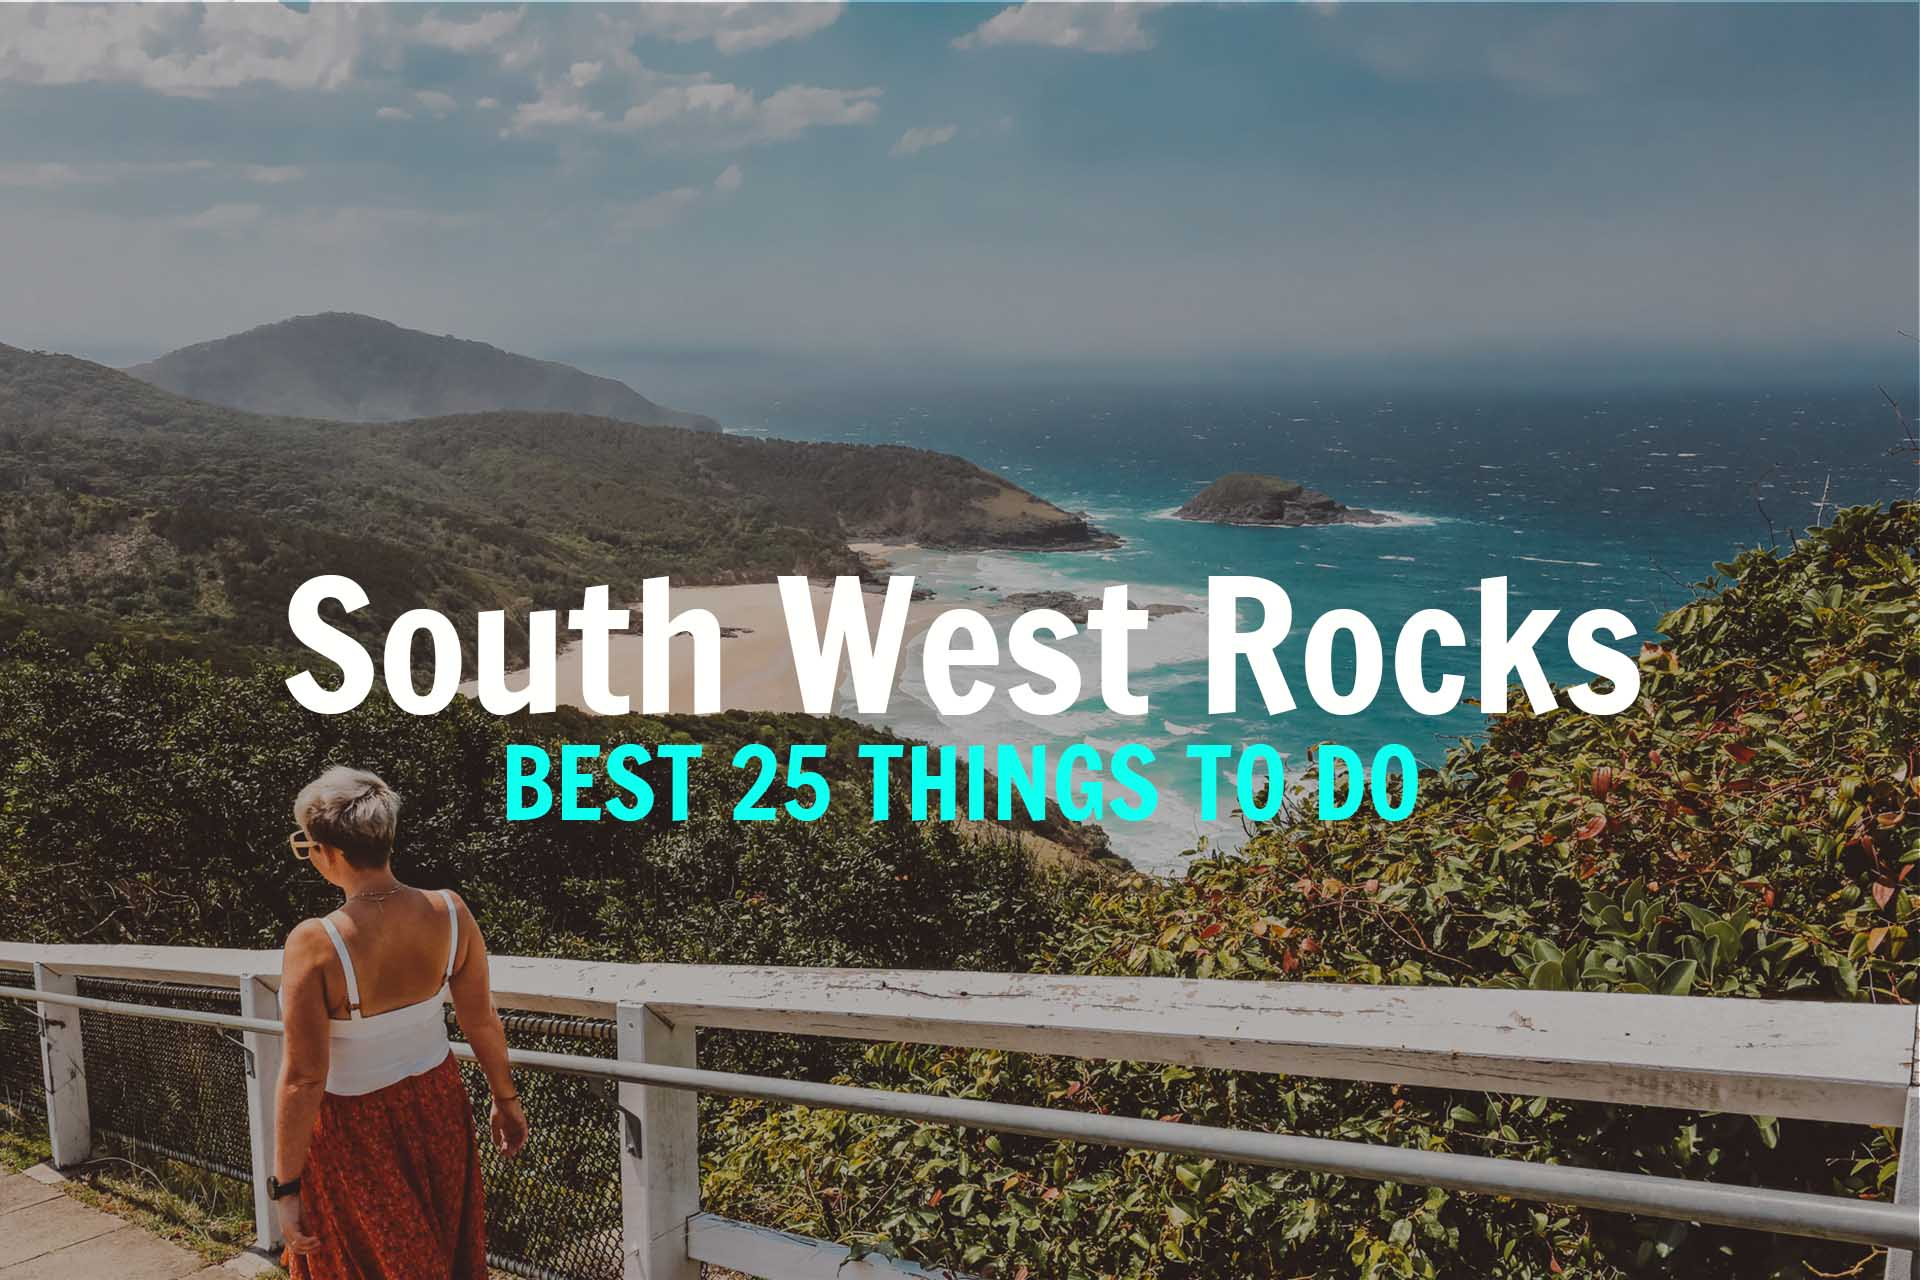 THINGS-TO-DO-IN-SOUTH-WEST-ROCKS